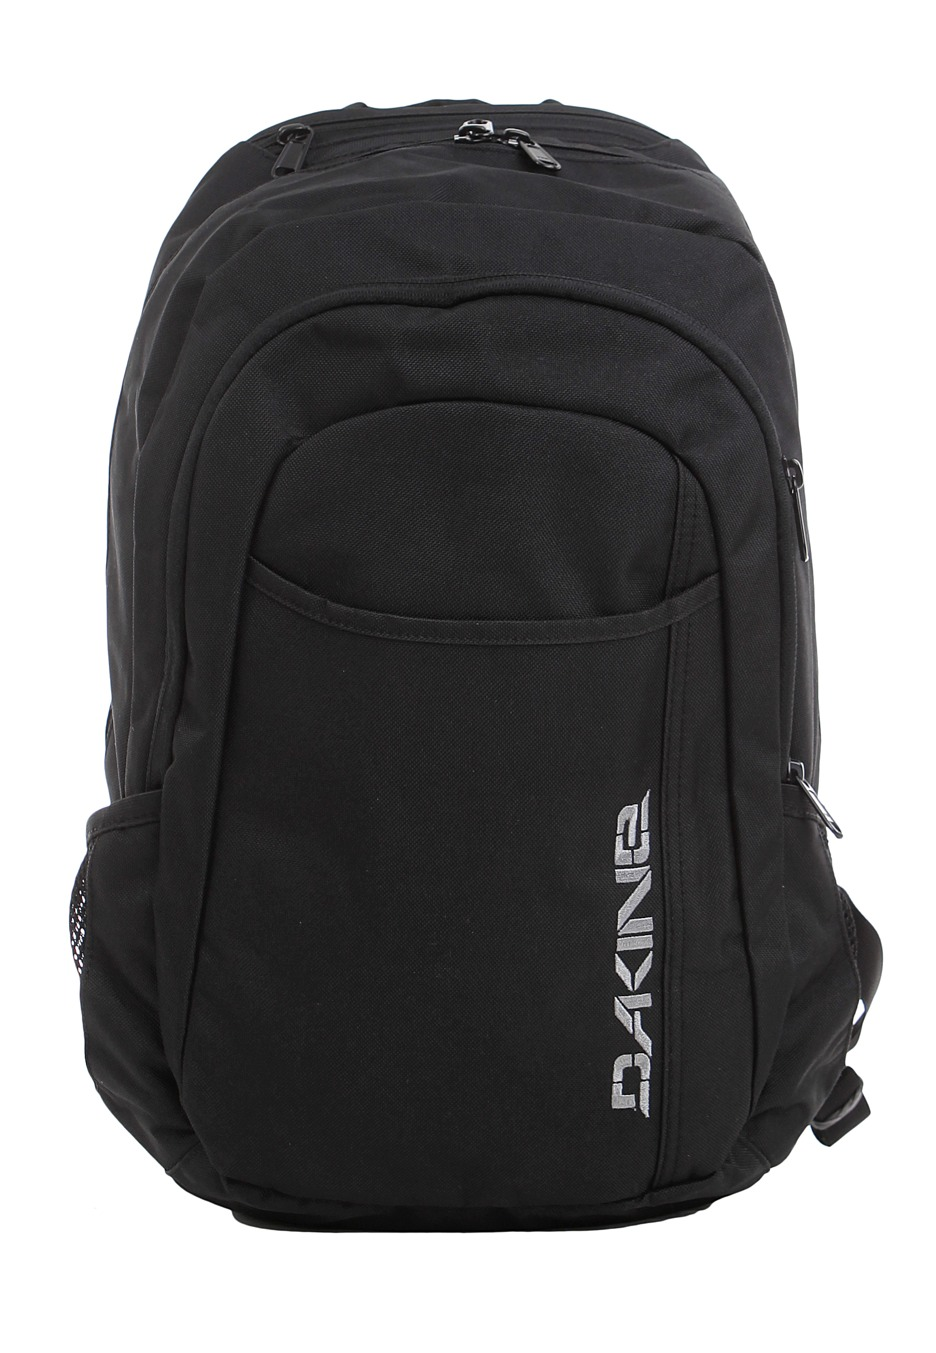 Dakine - Factor - Backpack - Impericon.com Worldwide